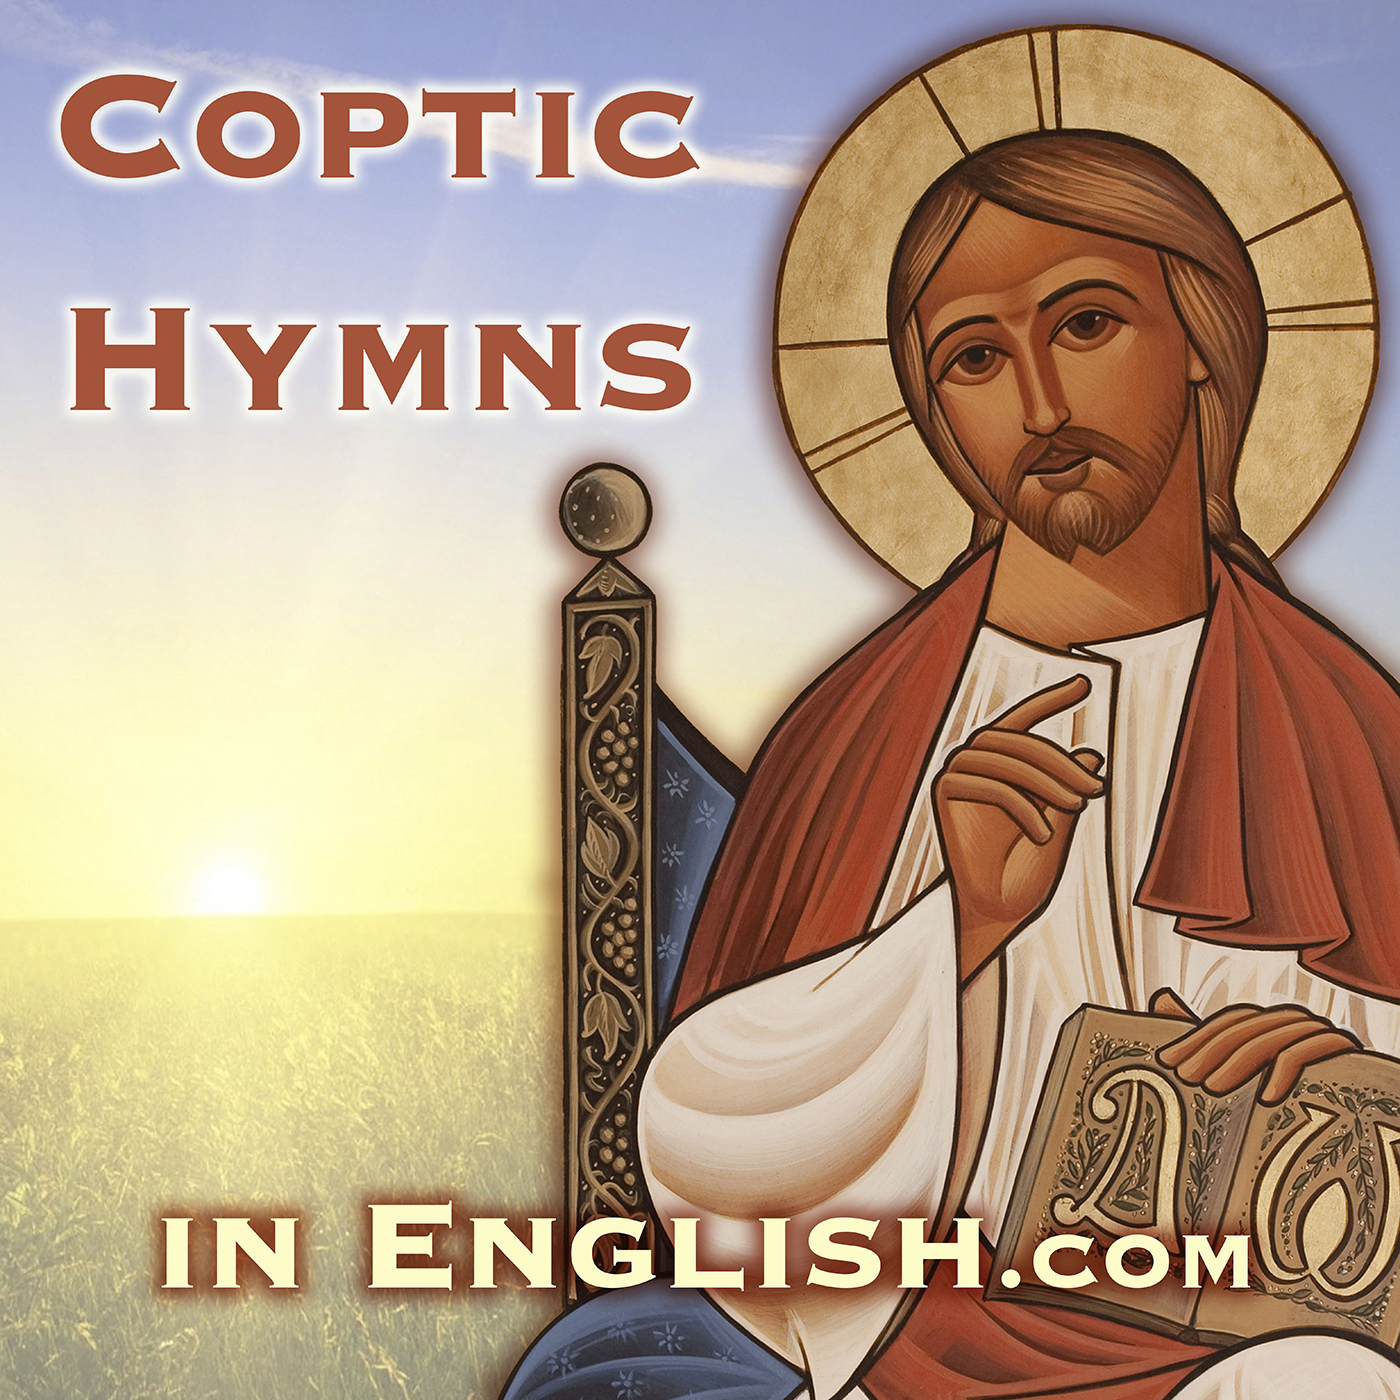 Coptic Hymns in English